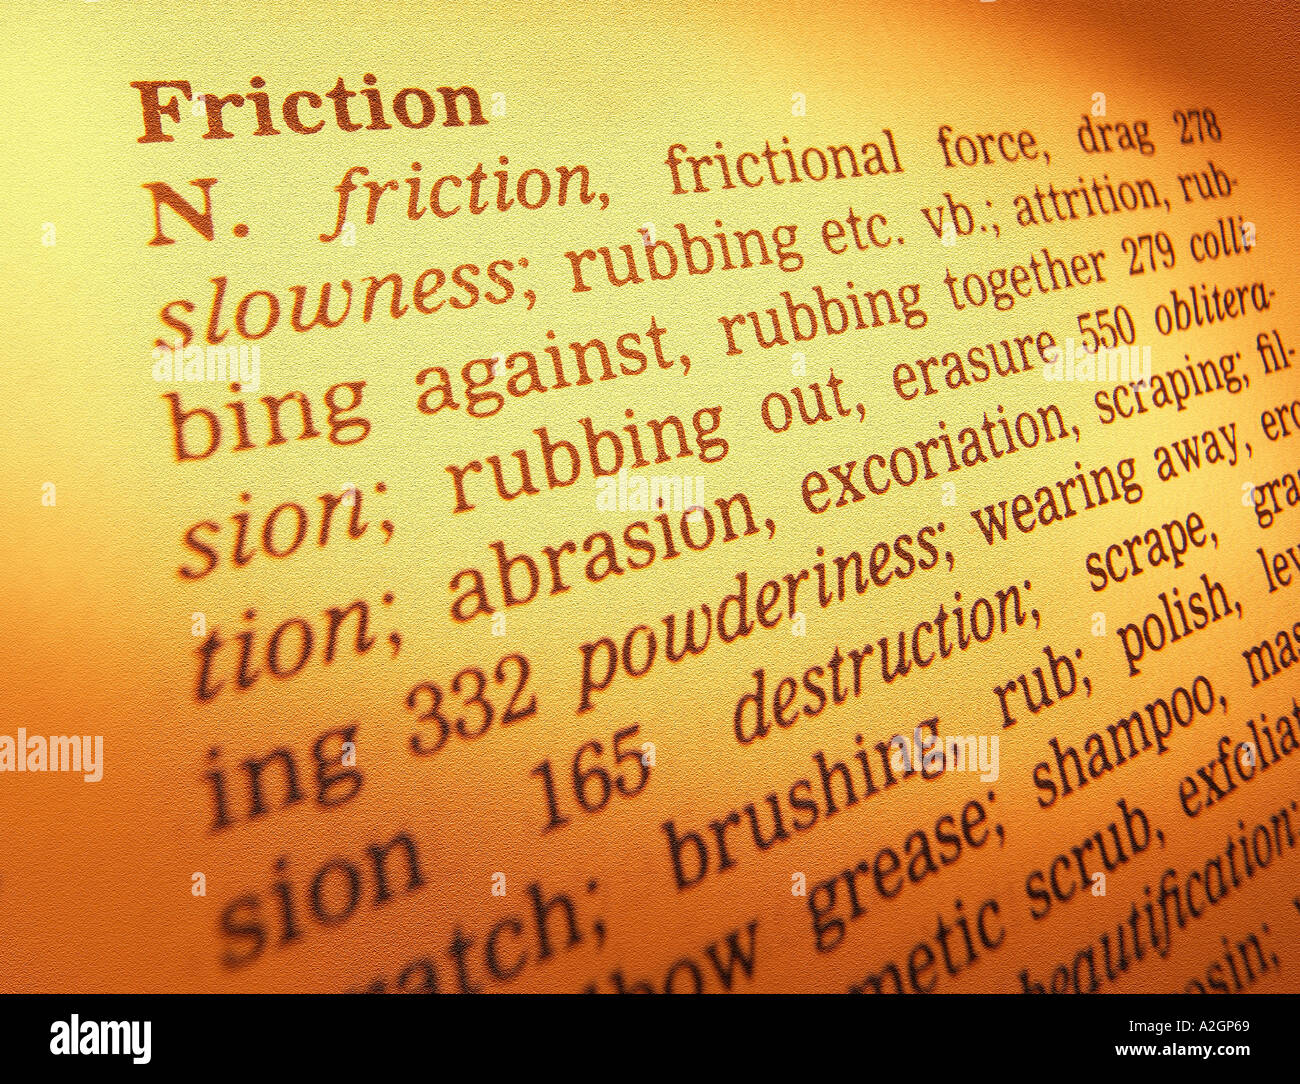 THESAURUS PAGE SHOWING DEFINITION OF WORD FRICTION - Stock Image